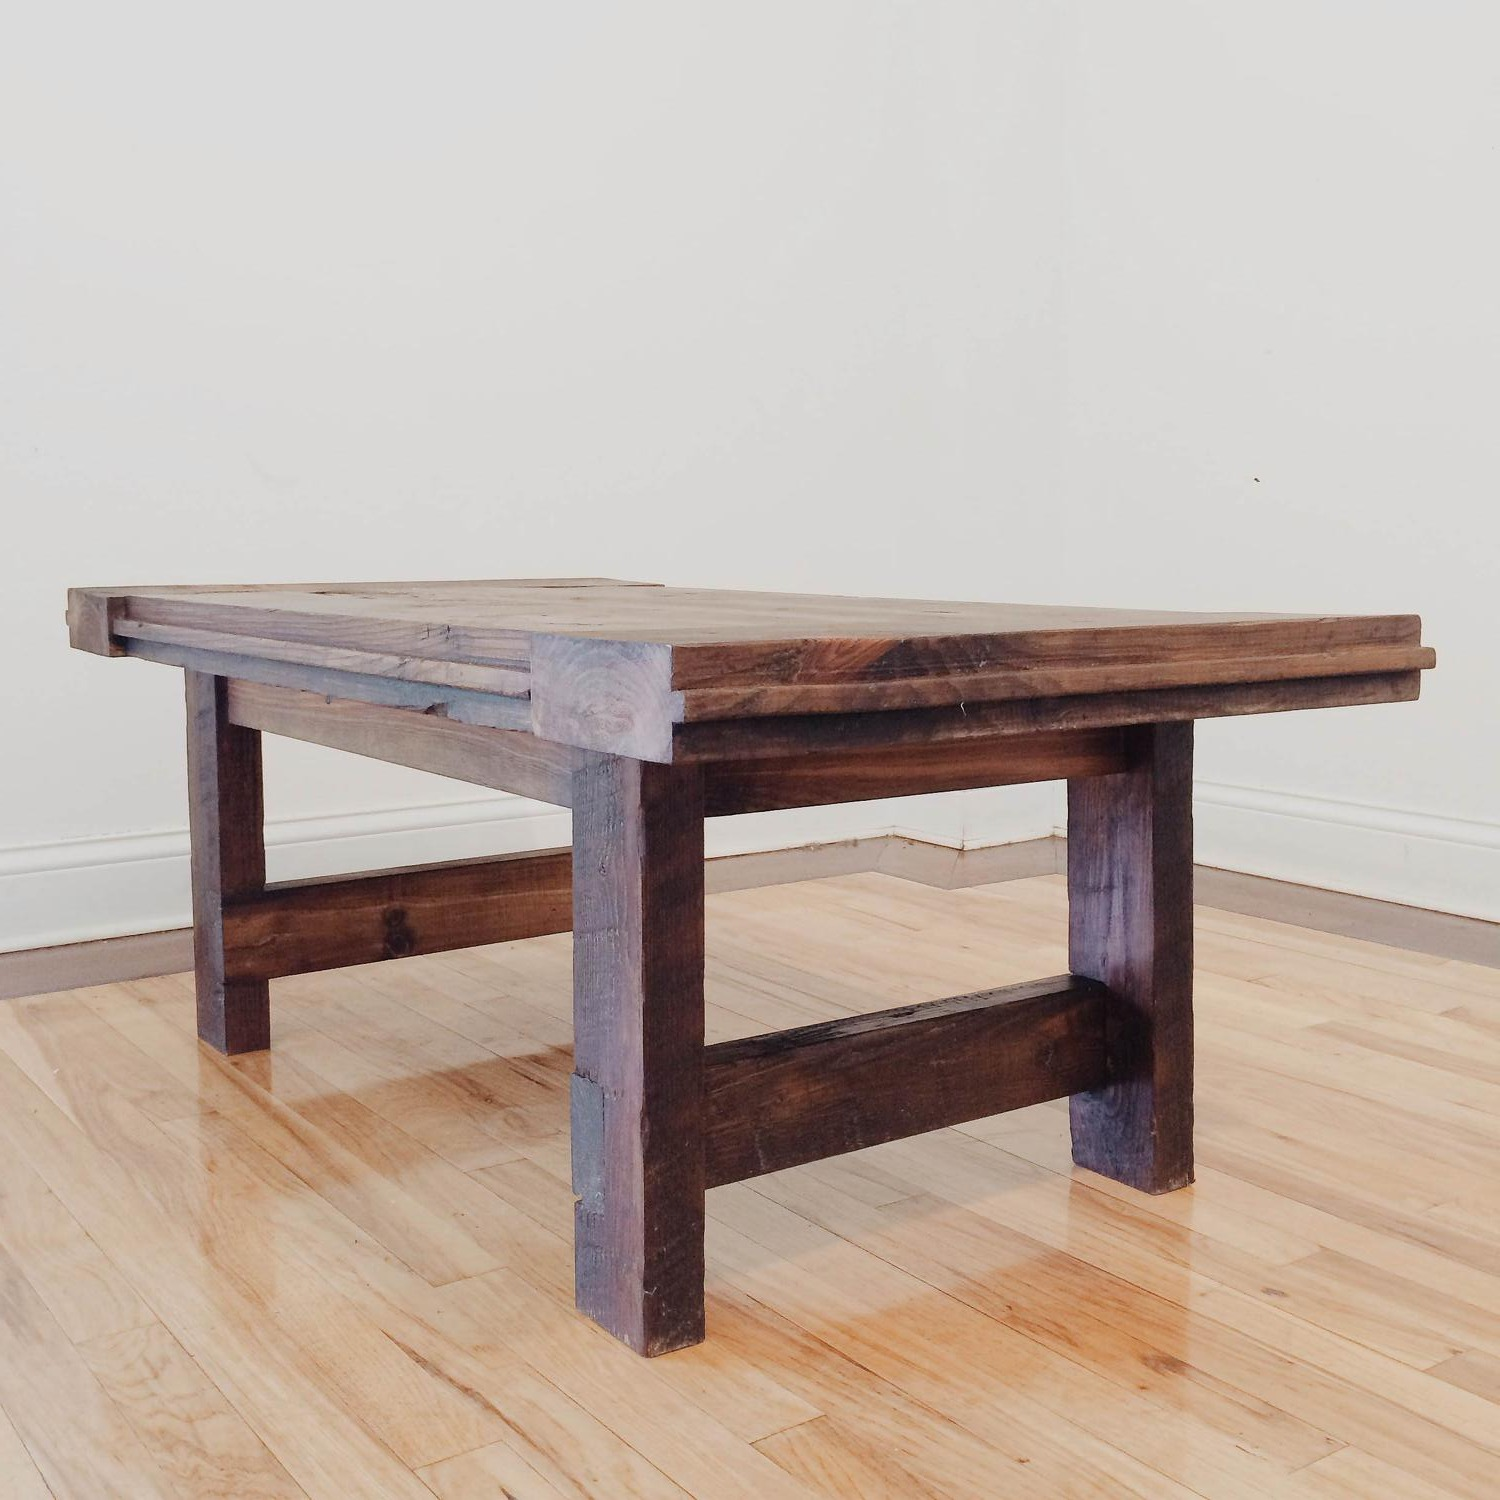 Rustic Reclaimed Table